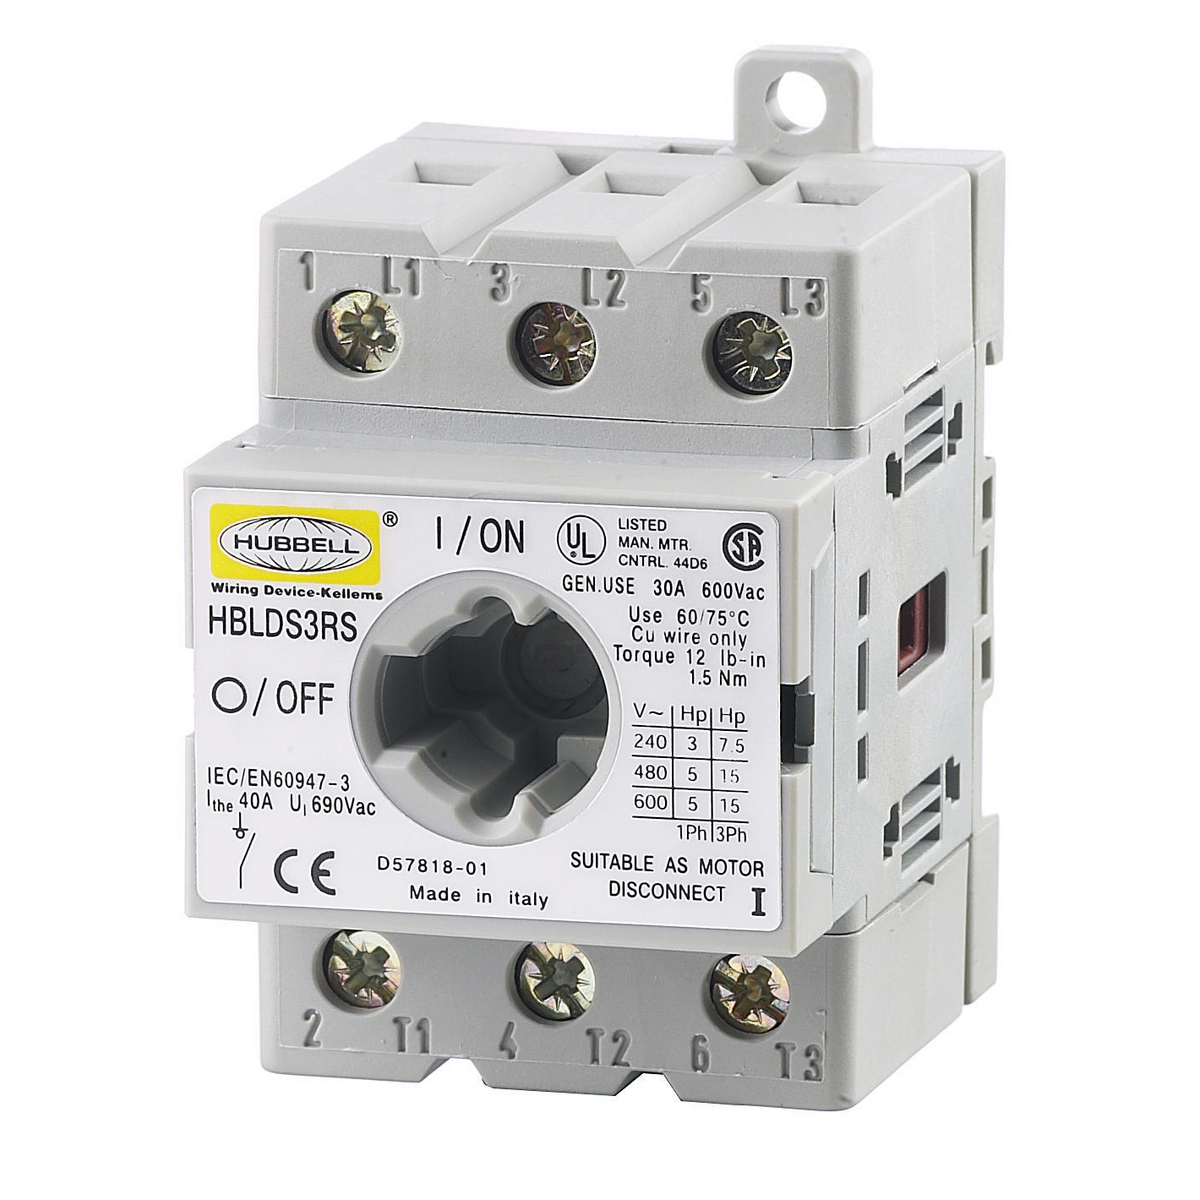 hubbell wiring device kellems distributors wiring solutions rh rausco com hubbell wiring device-kellems distributors hubbell wiring device-kellems distributors